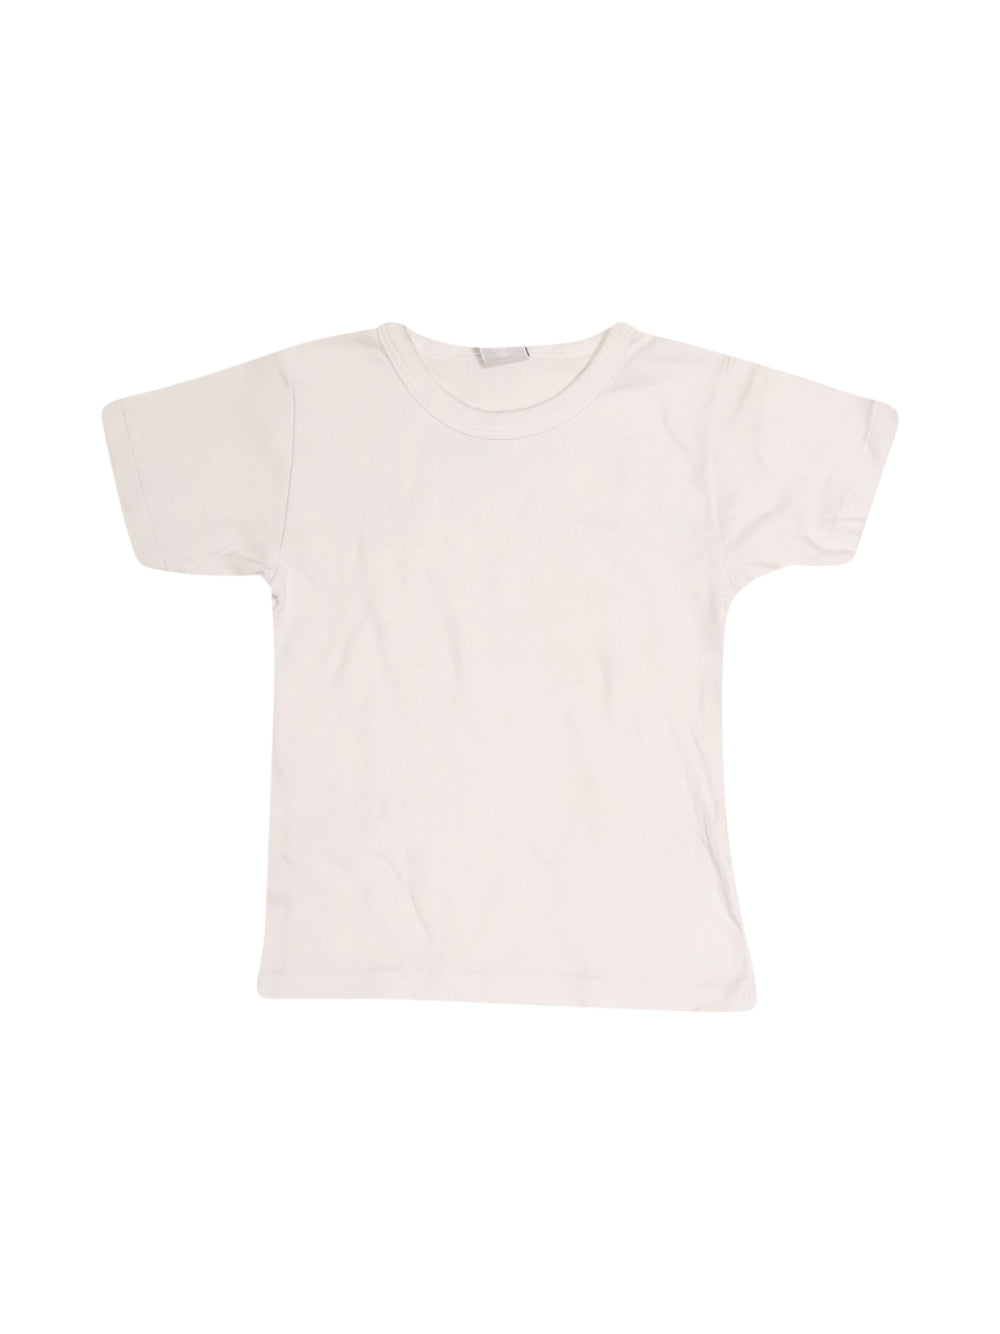 Front photo of Preloved Petit Bateau White Boy's t-shirt - size 3-4 yrs